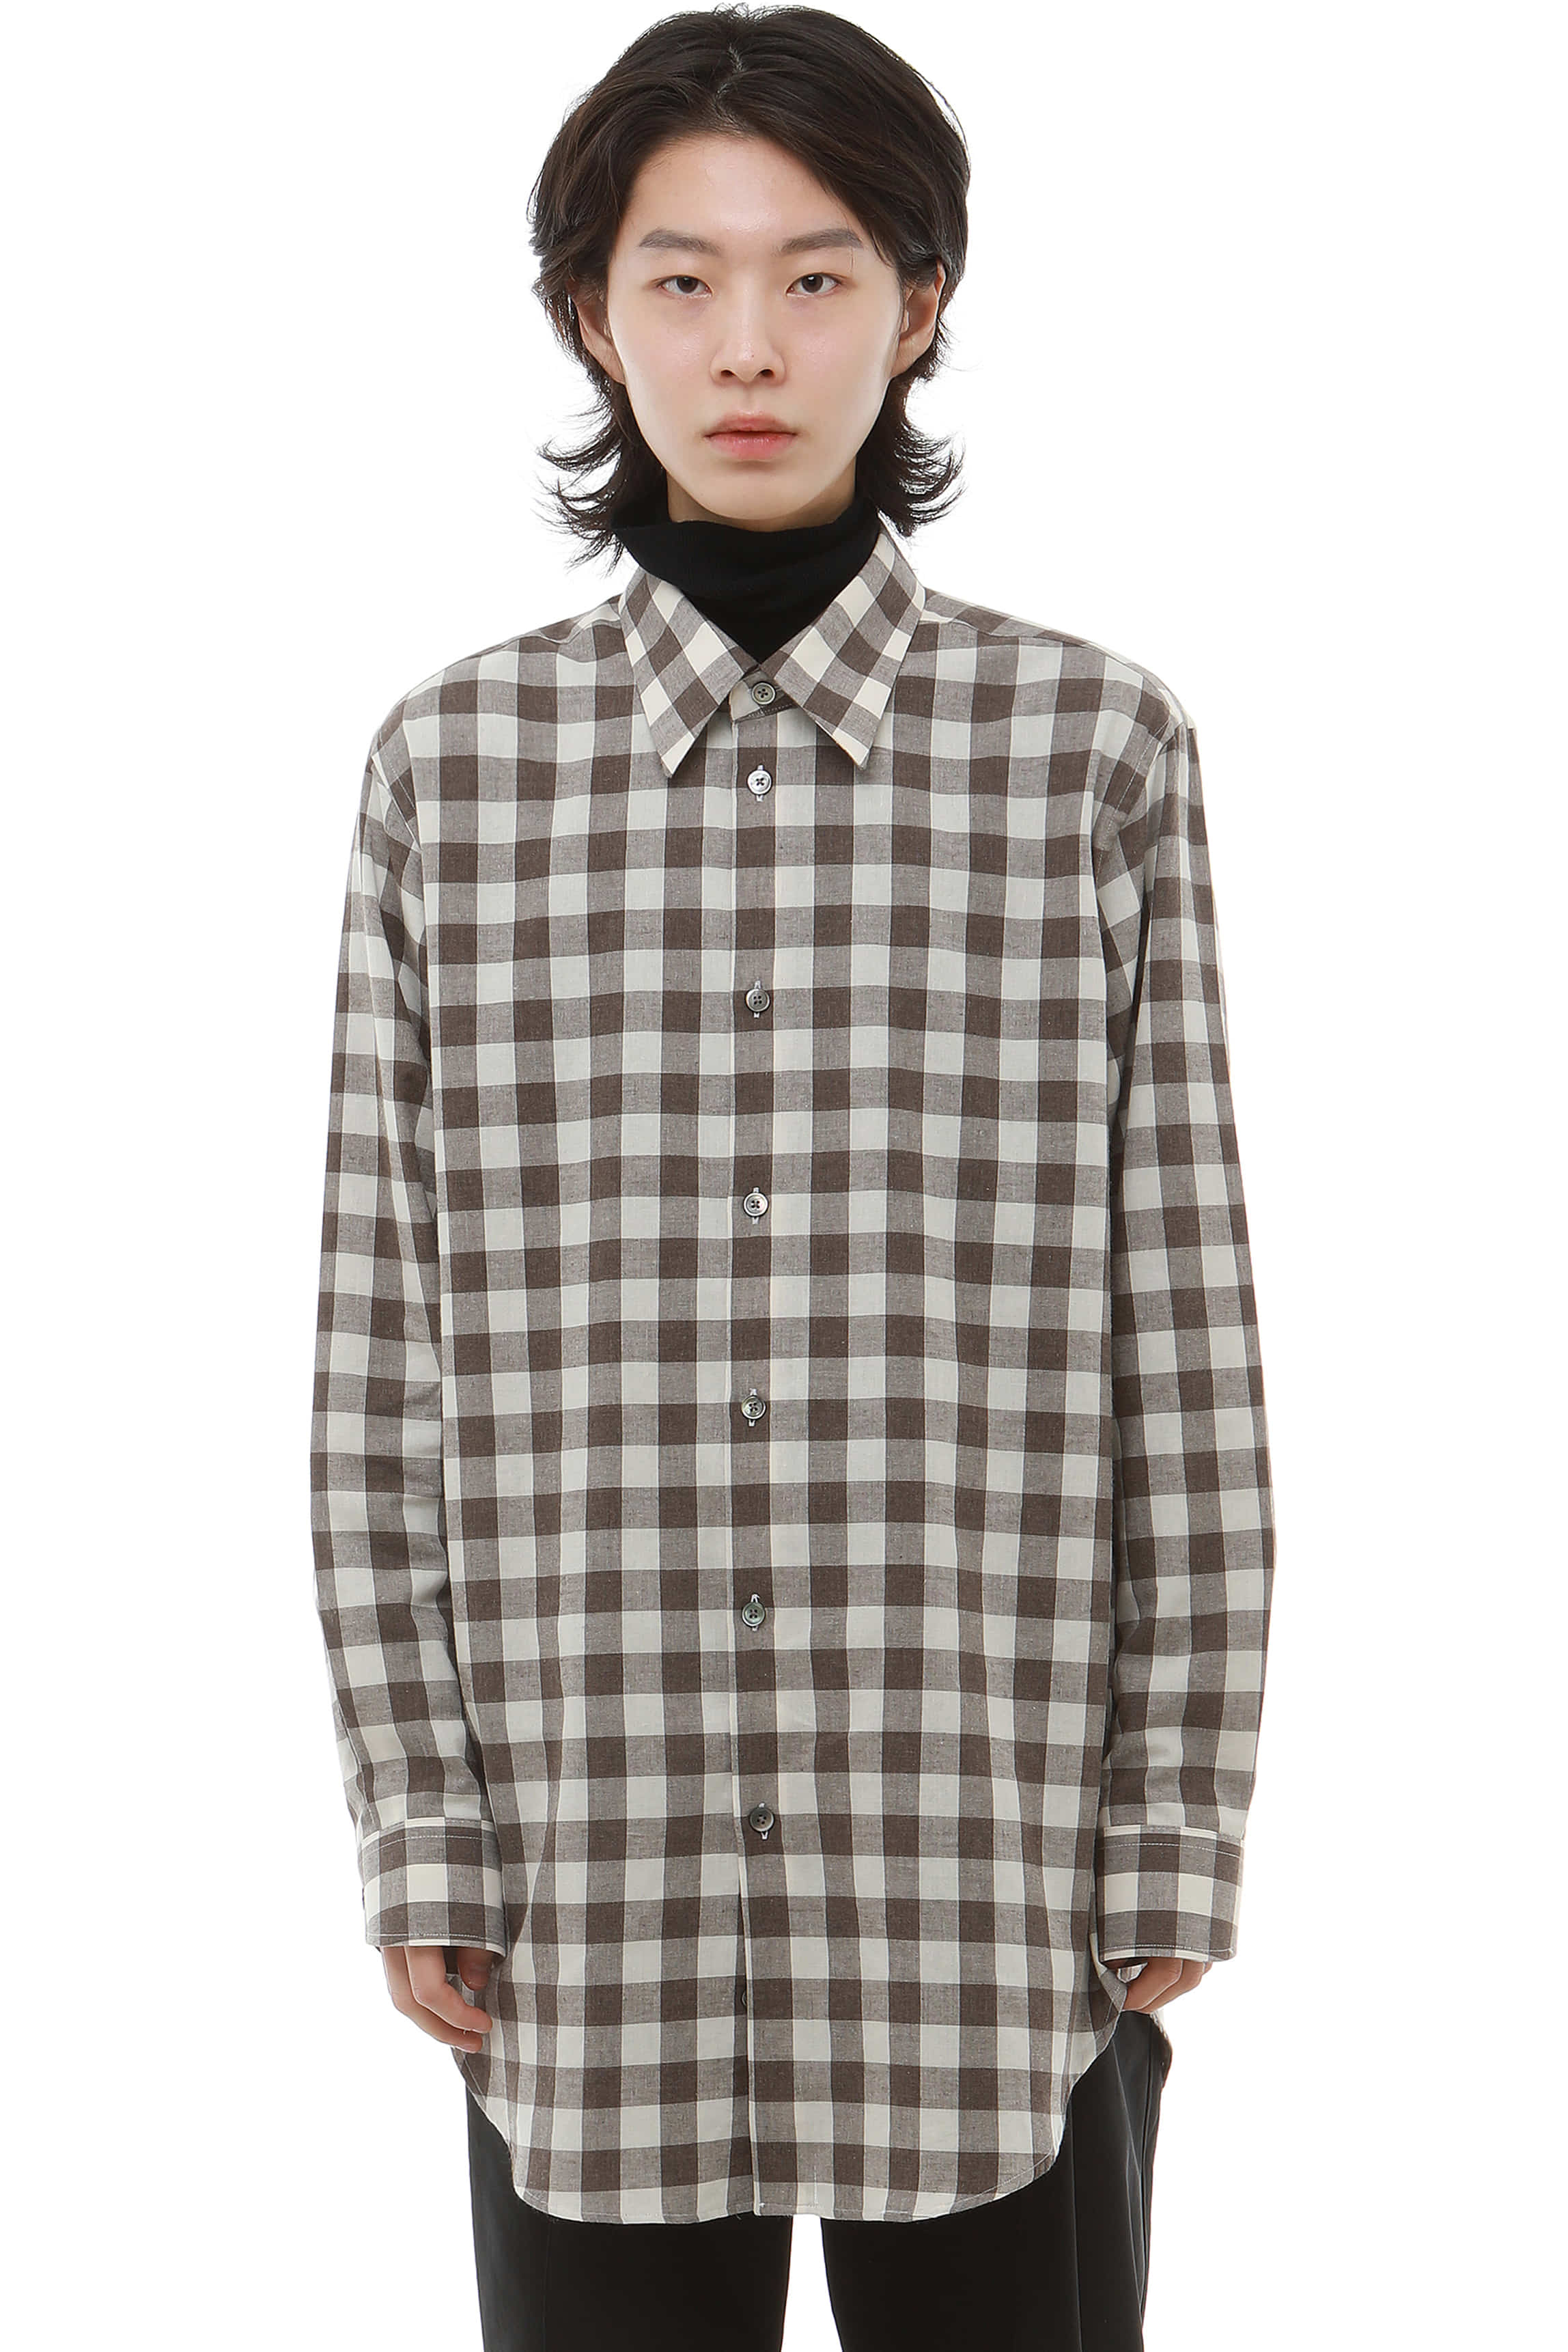 S006 / Brown Check Long Shirts